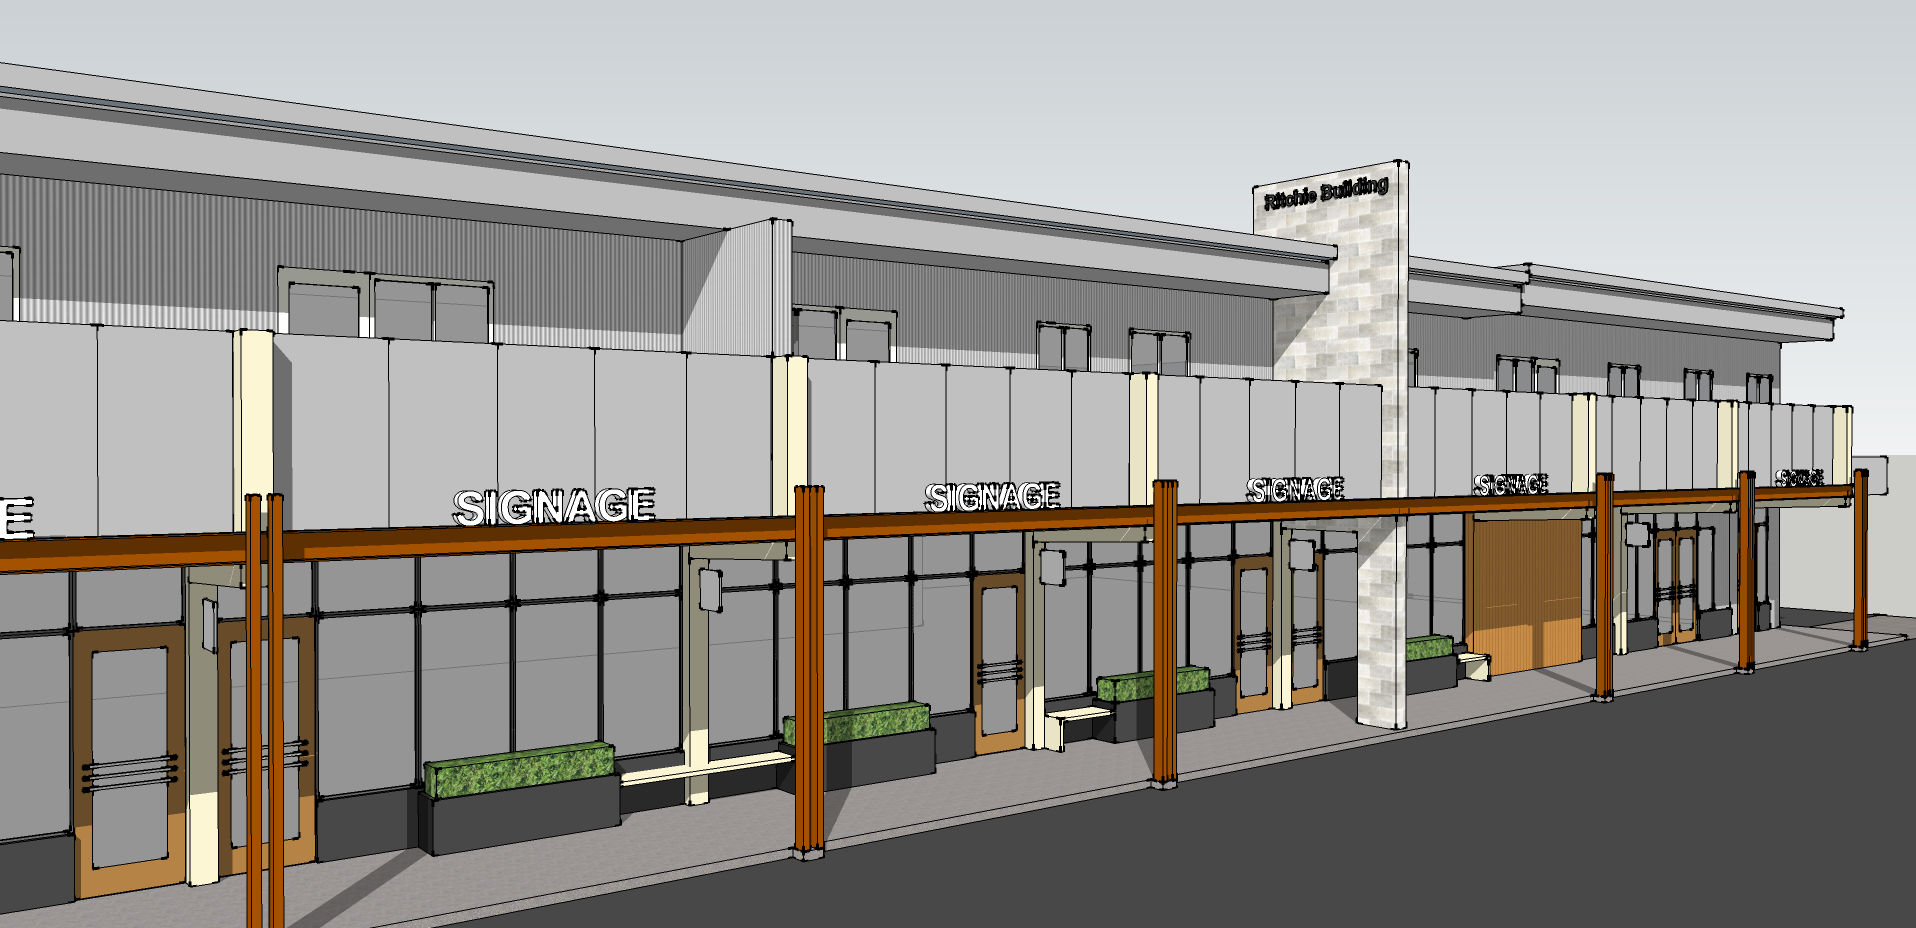 Ritchie Building Facade Improvement – Concept Image 03